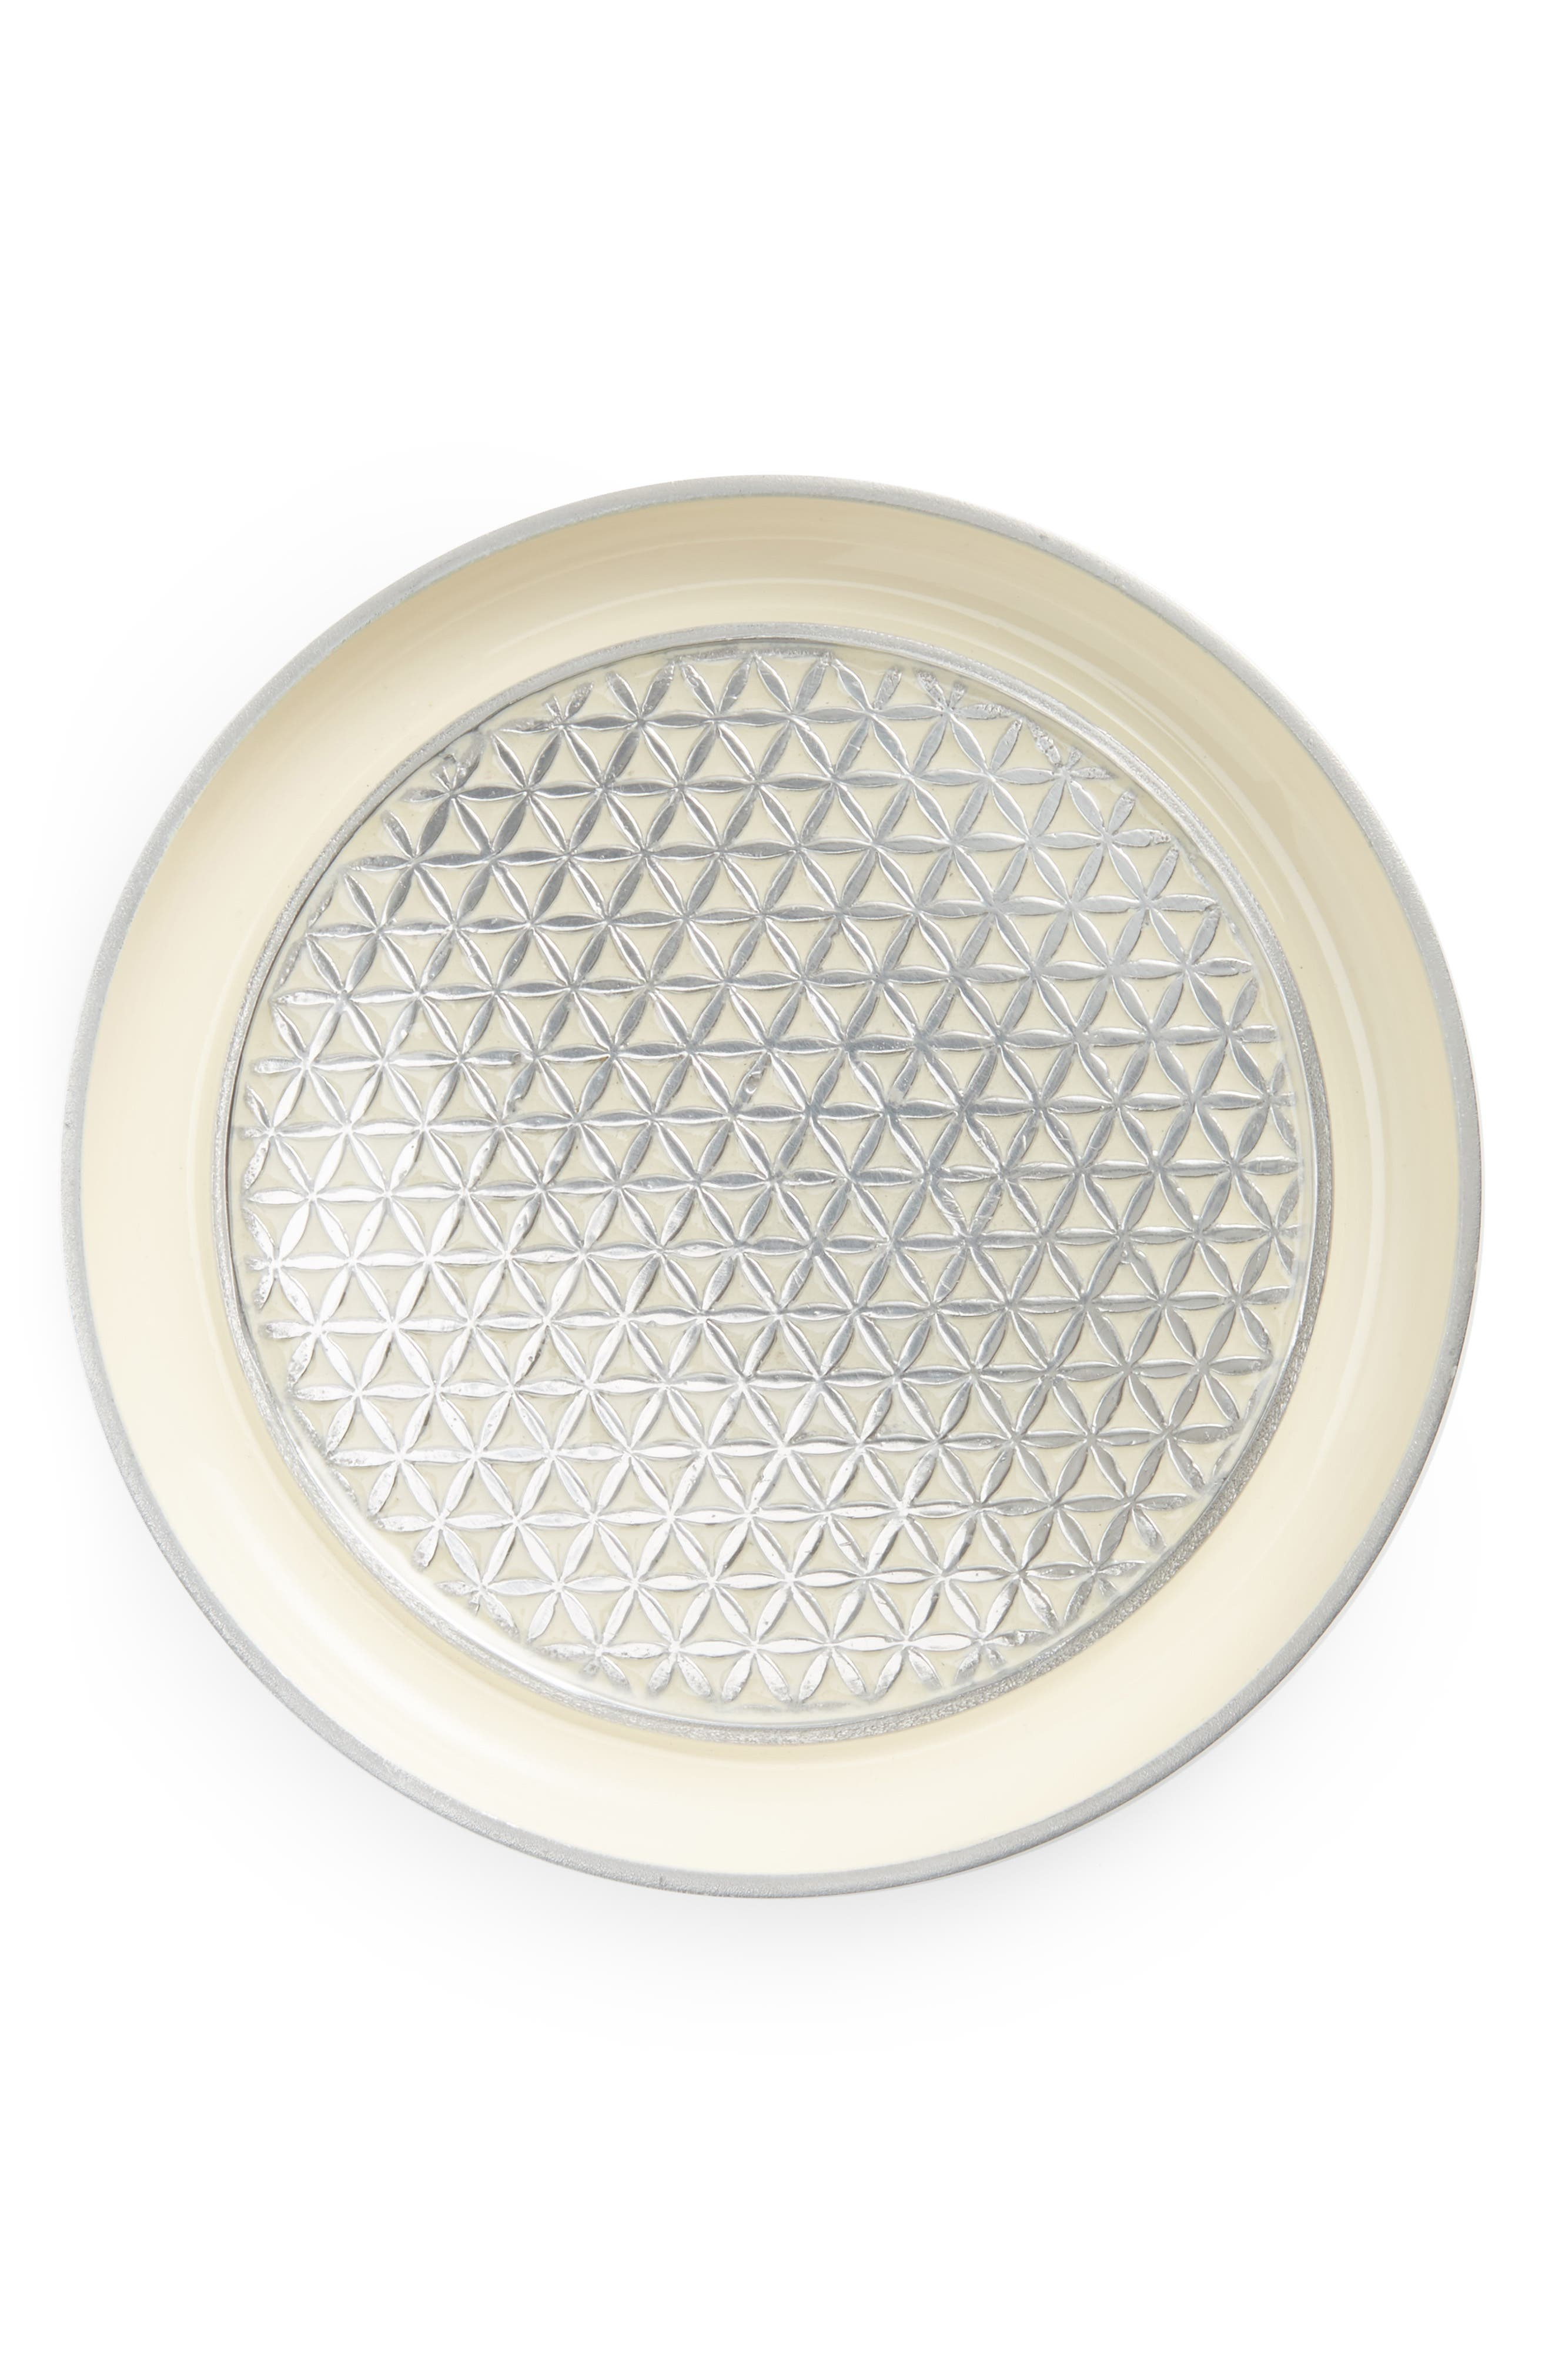 Marigold Artisans Flower of Life Tray